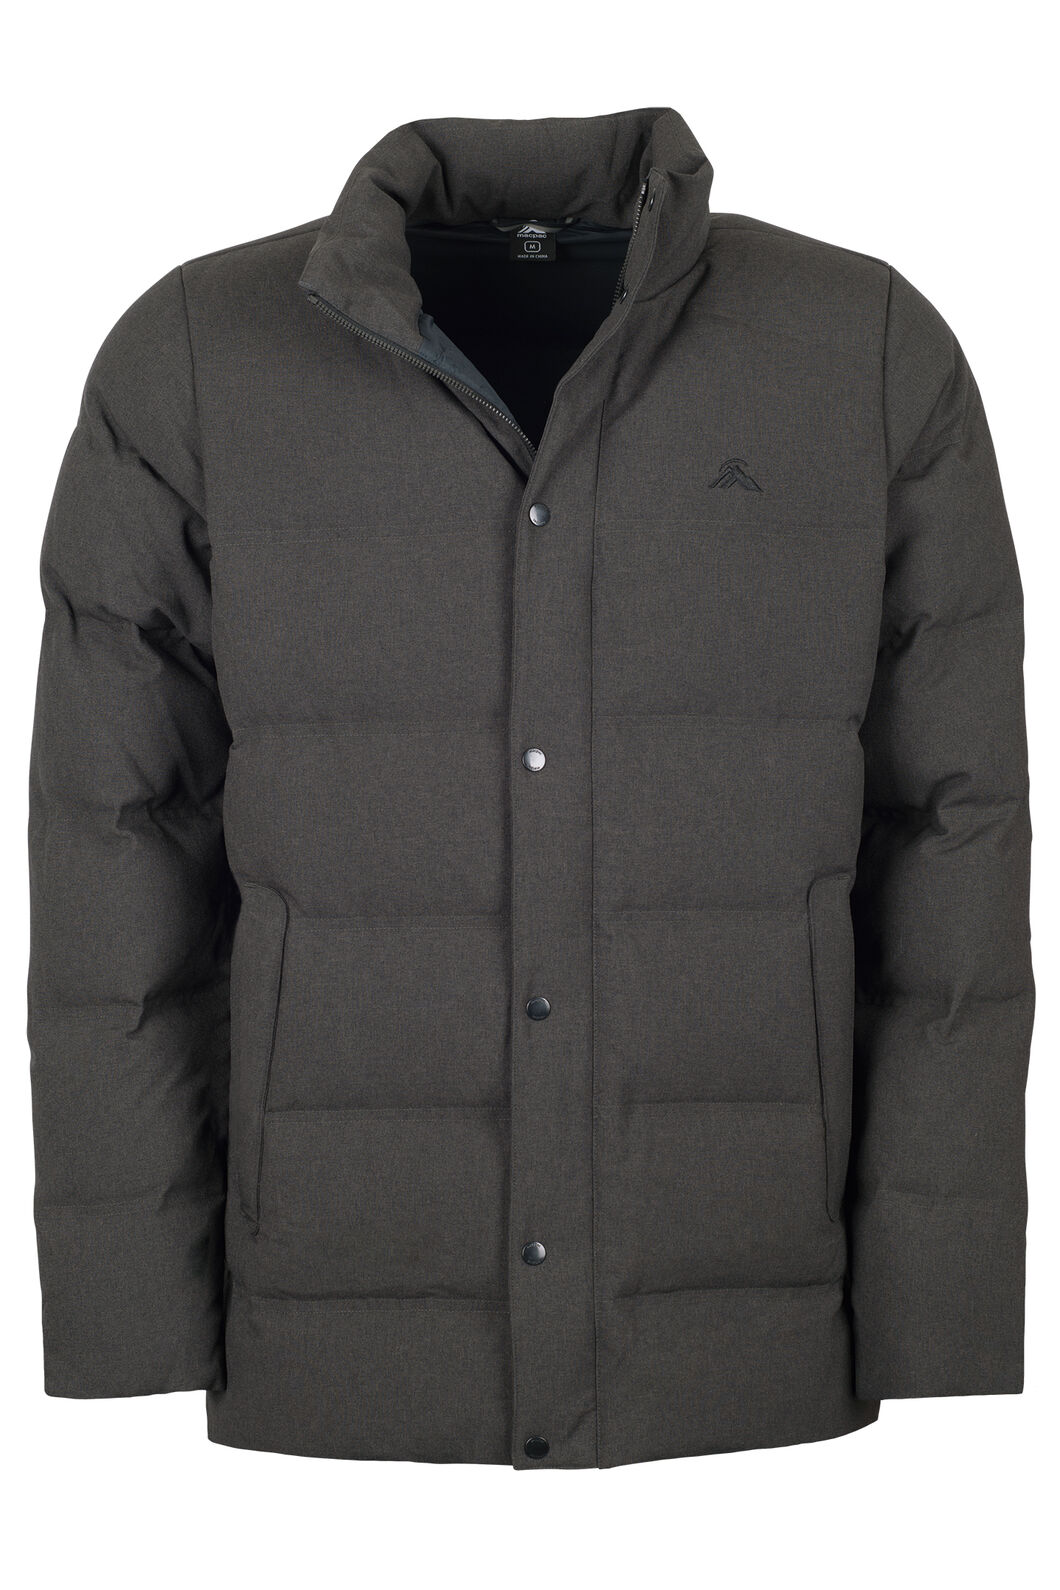 Meridian Down Jacket - Men's, Charcoal Marle, hi-res